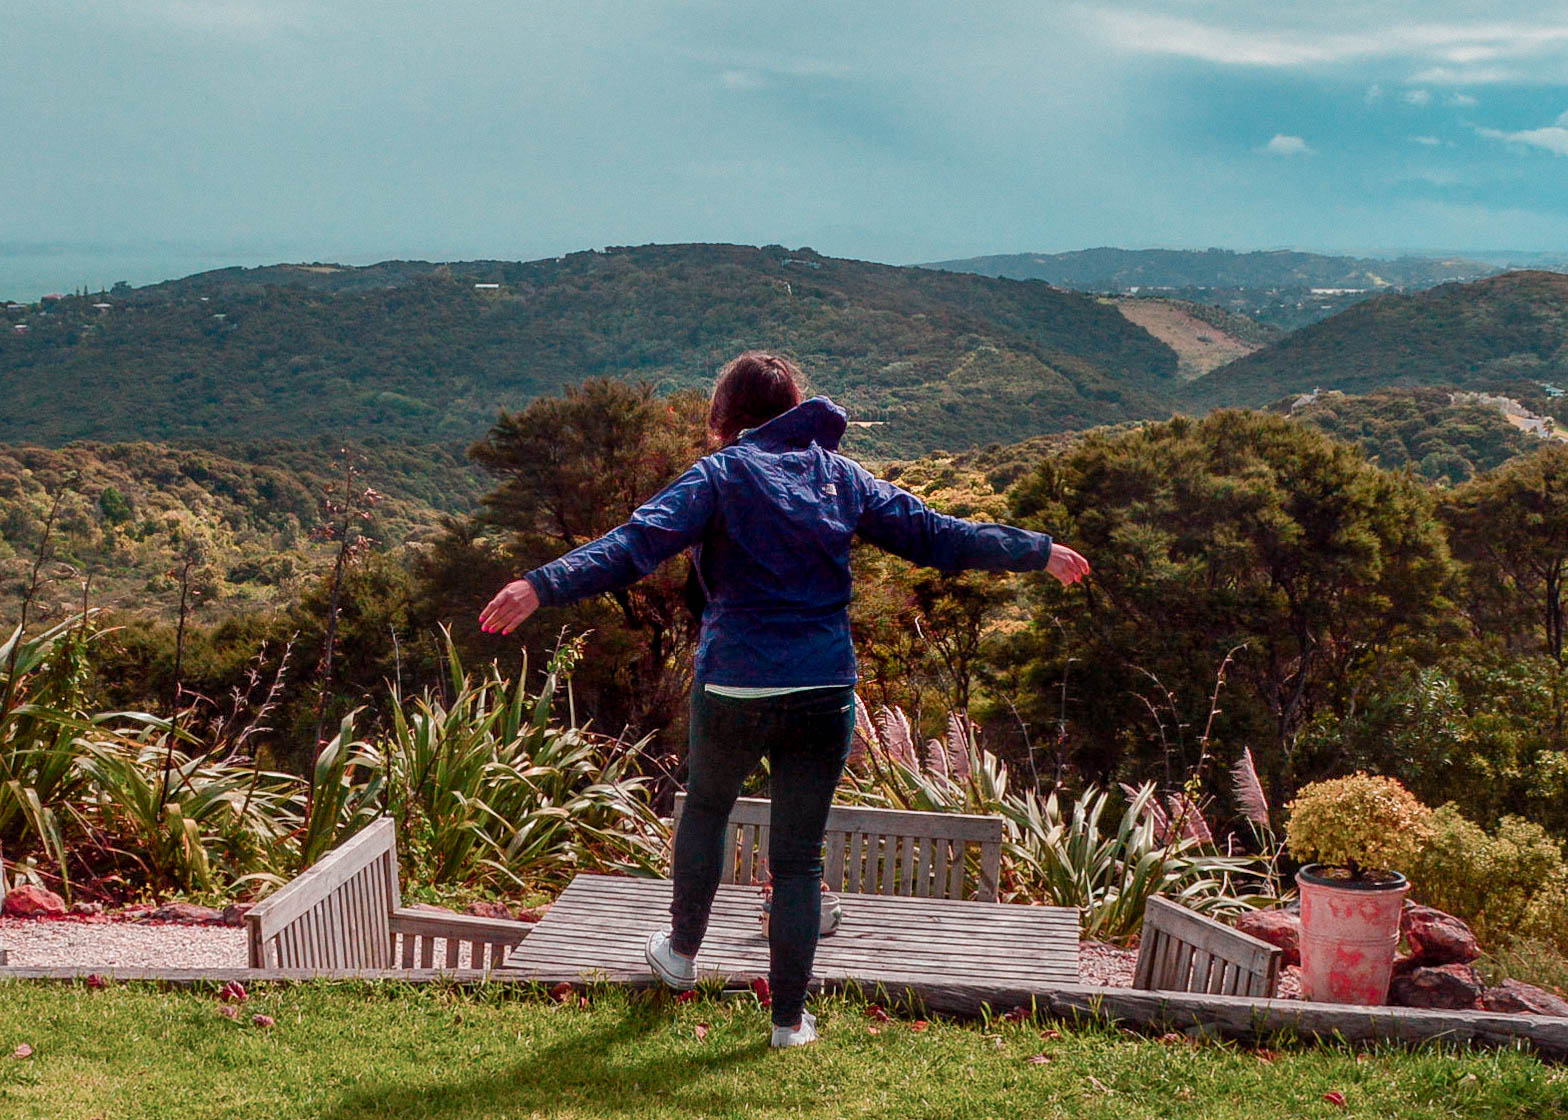 New Zealand Travel | 2017 Travel Year in Review + Travel and Blog Goals for 2018 | goseekexplore.com